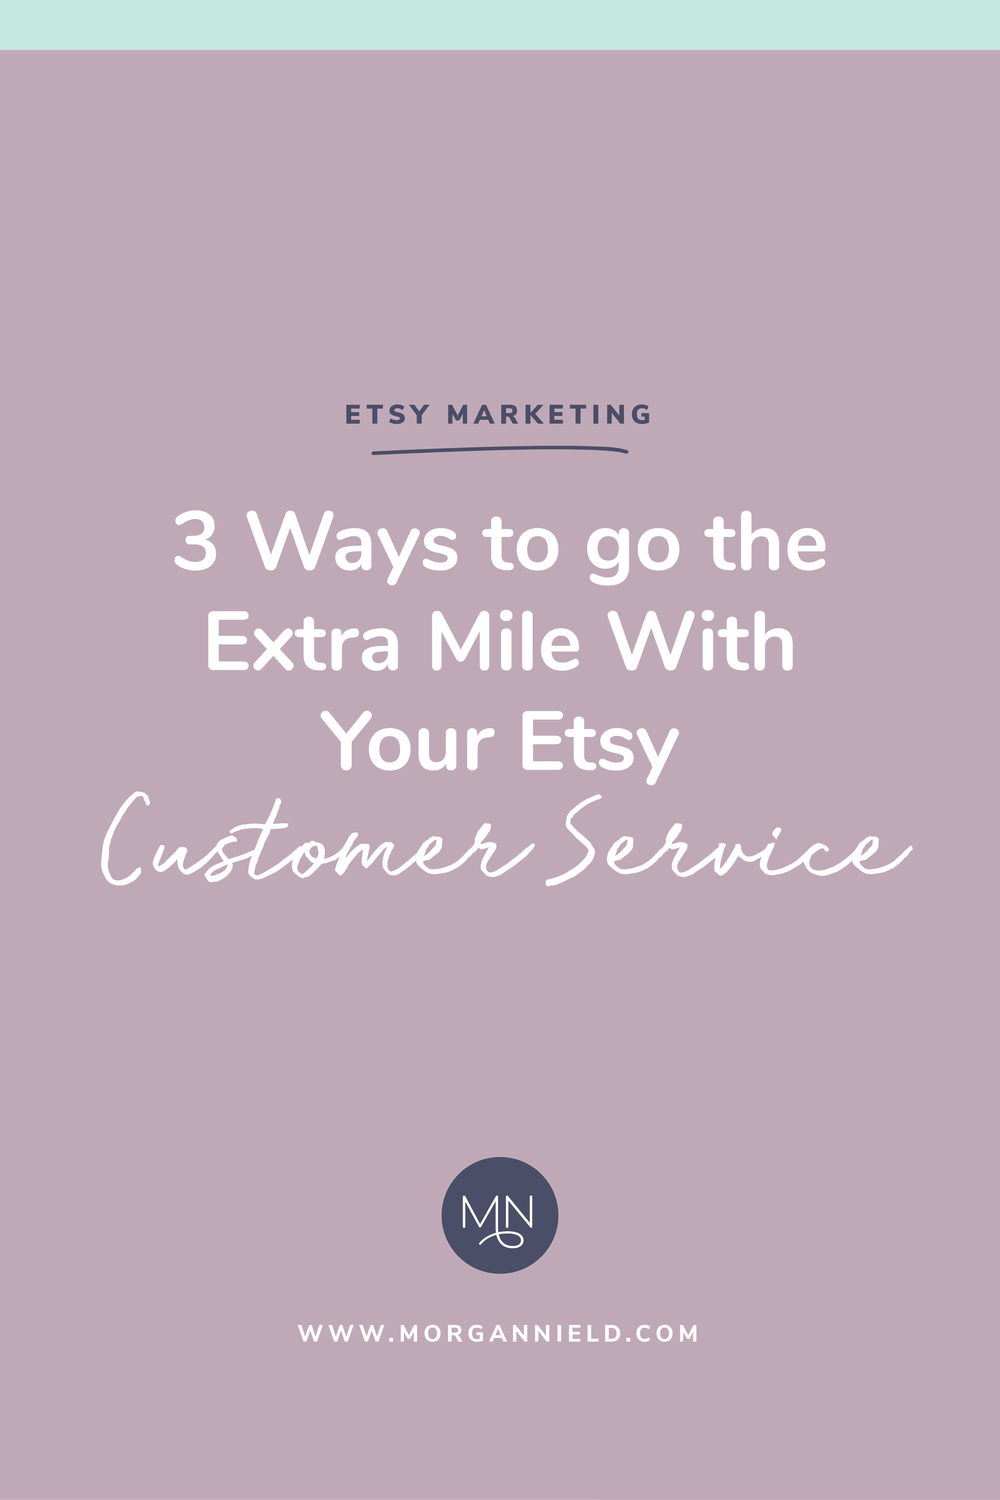 Customer service on Etsy is KEY to exponential growth and long-term success. You can implement all the Etsy marketing tips in the world, but if you aren't providing your customers with a positive shopping experience, they WON'T come back. Let me share with you my top 3 tips for earning yourself those valuable repeat customers and, ultimately, making more sales! >>